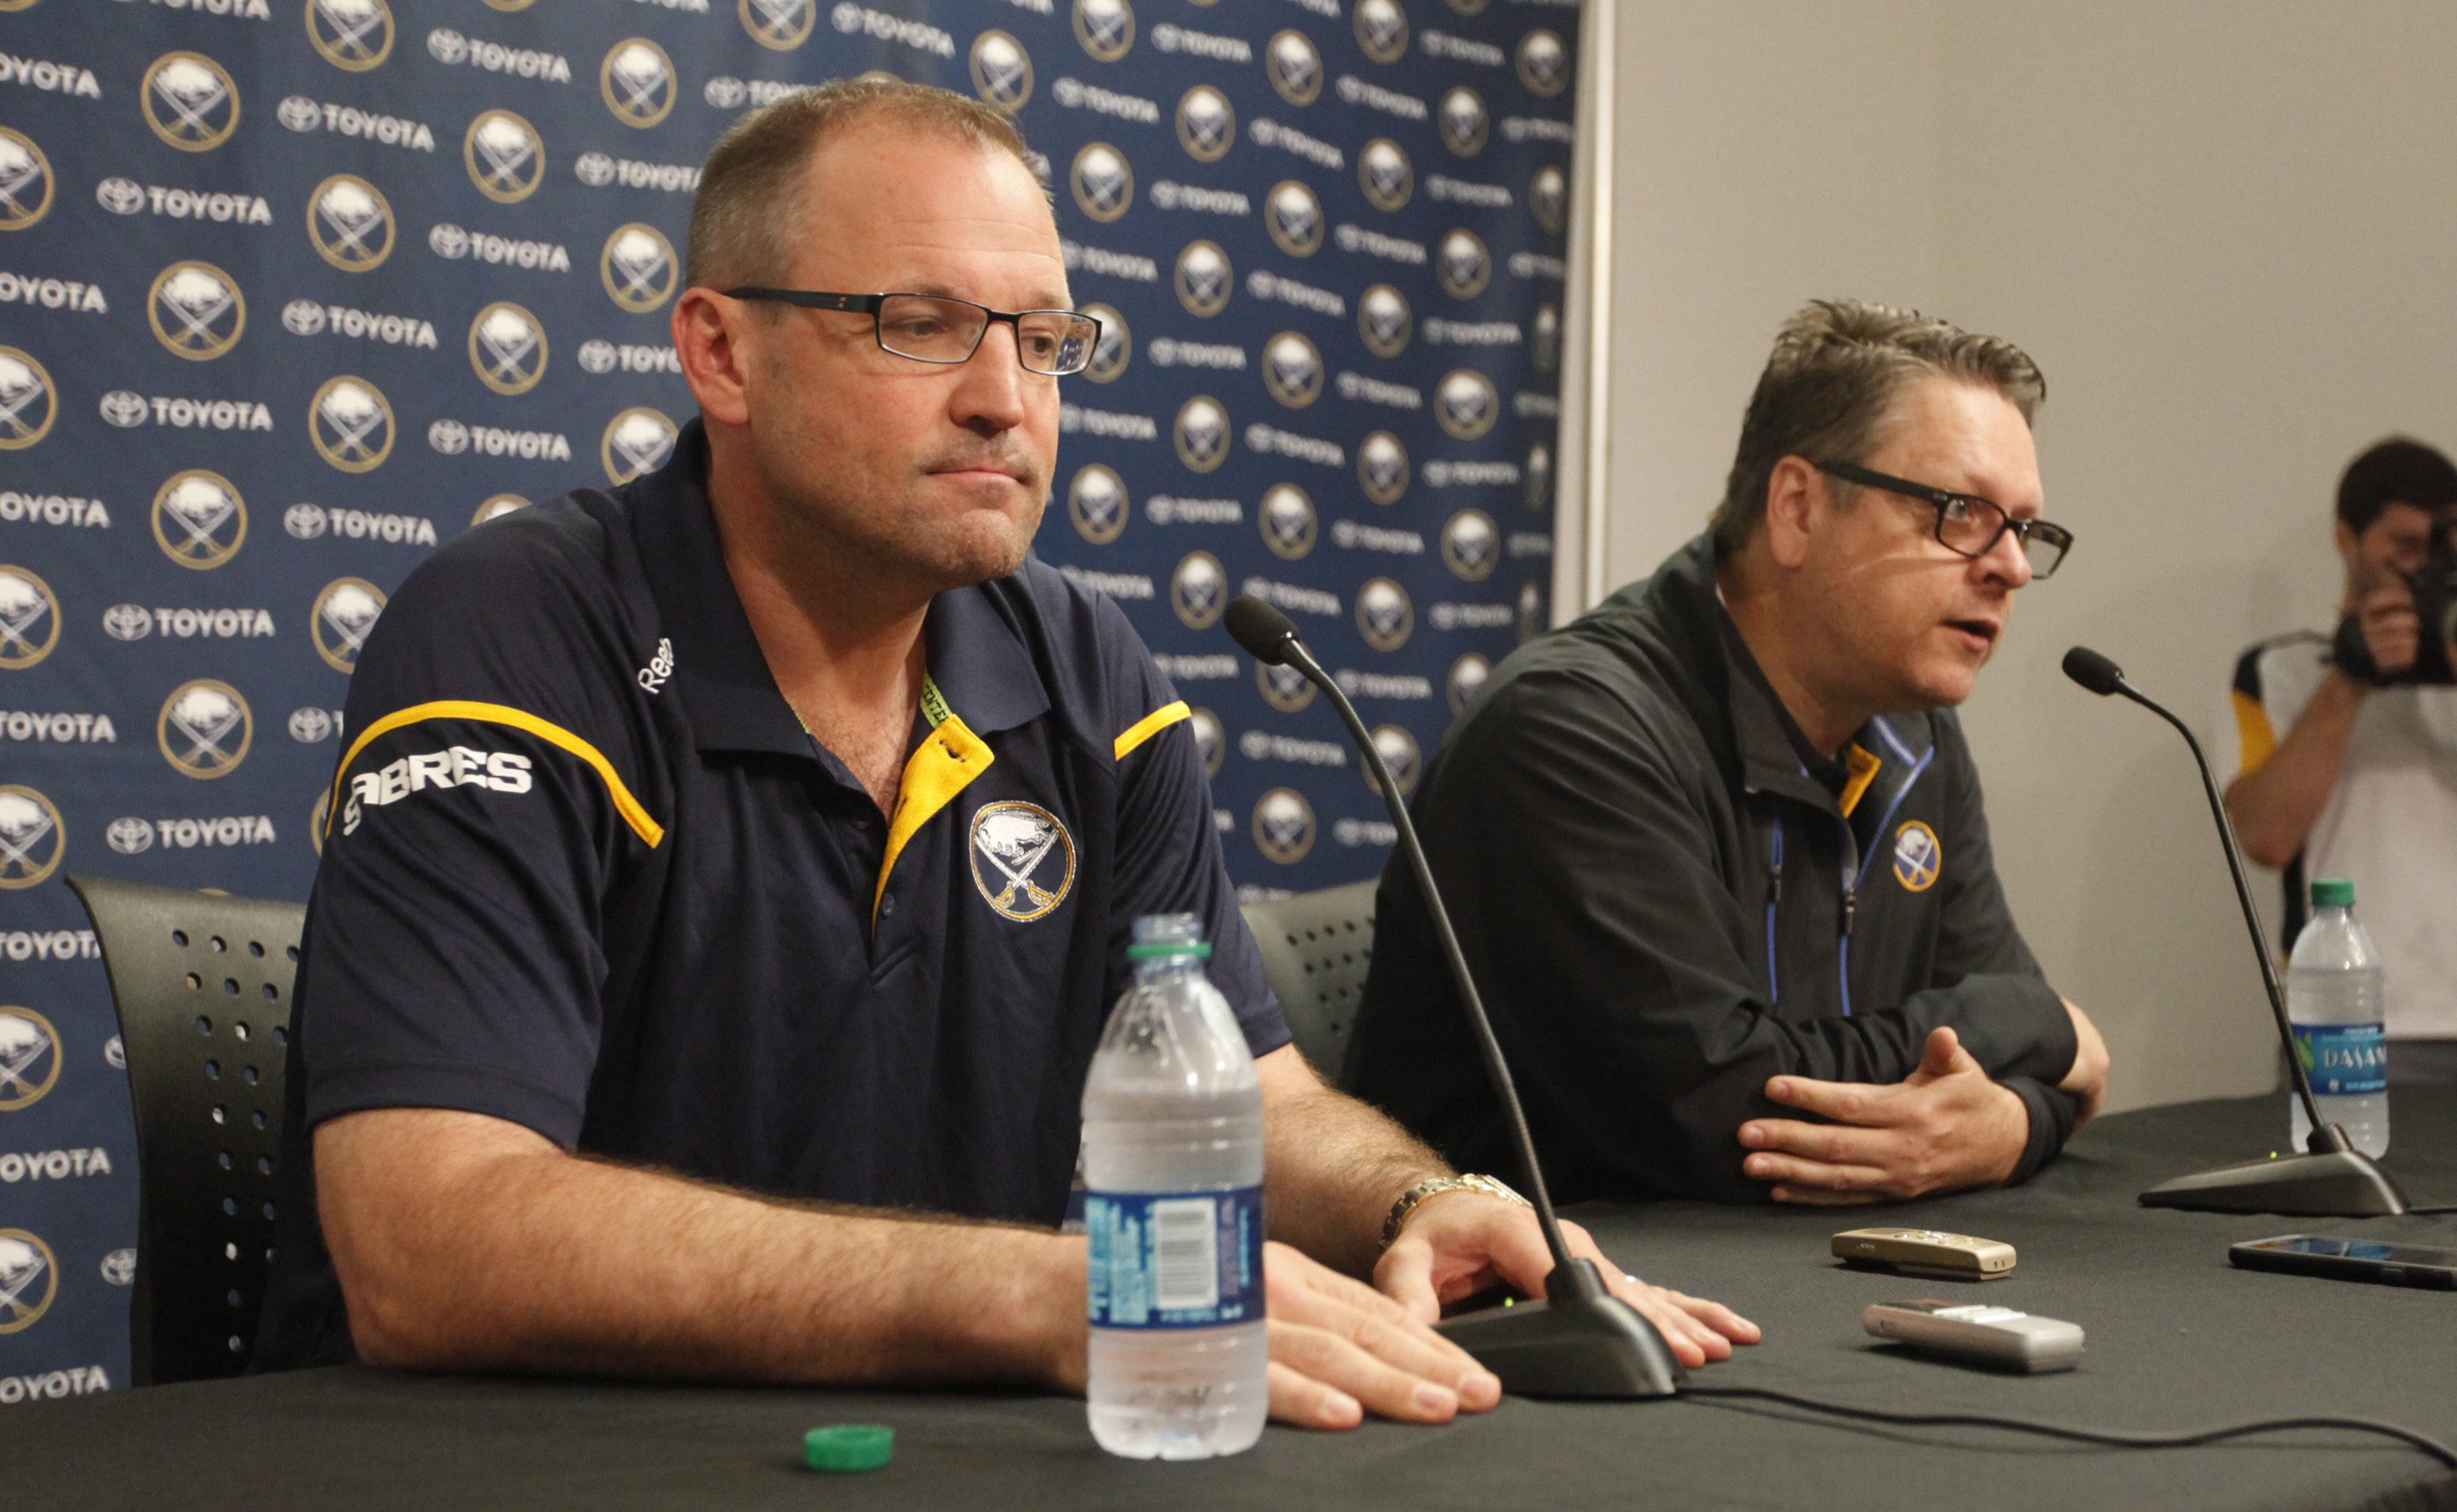 New Buffalo Sabres head coach Dan Bylsma announced he added Terry Murray and Dave Barr to his coaching staff.